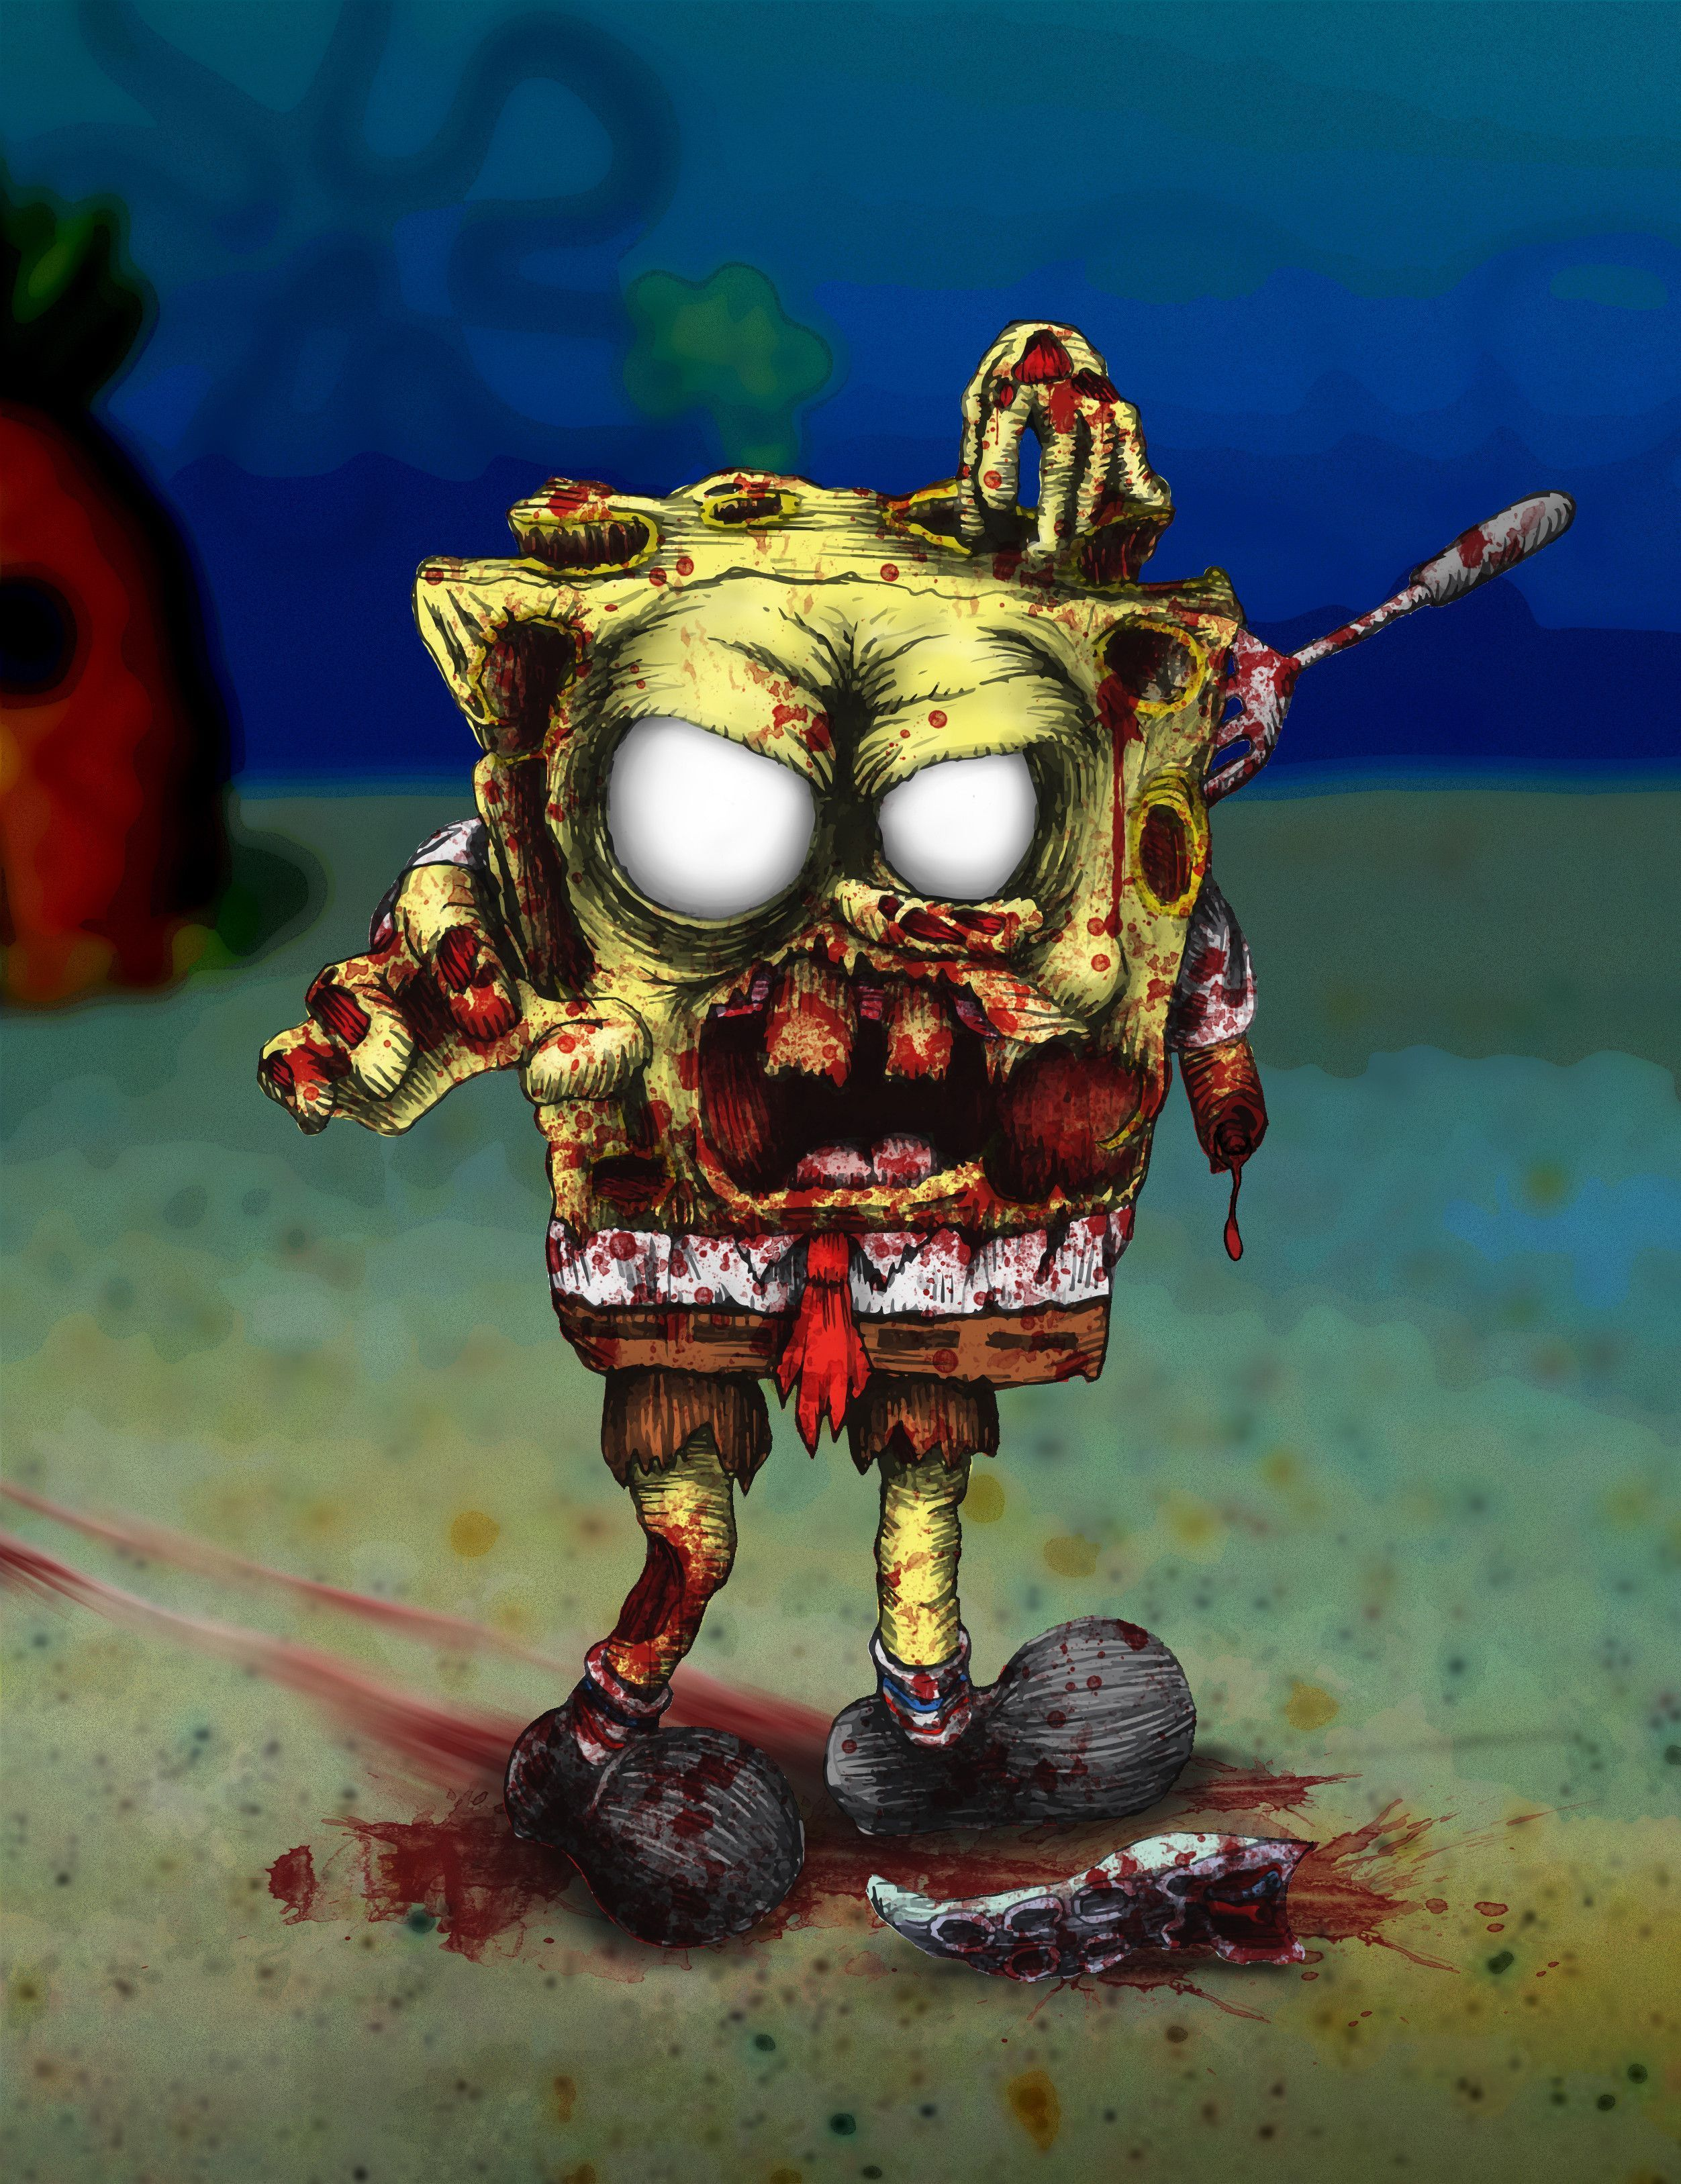 Scary Spongebob : scary, spongebob, Scary, SpongeBob, Wallpapers, Wallpaper